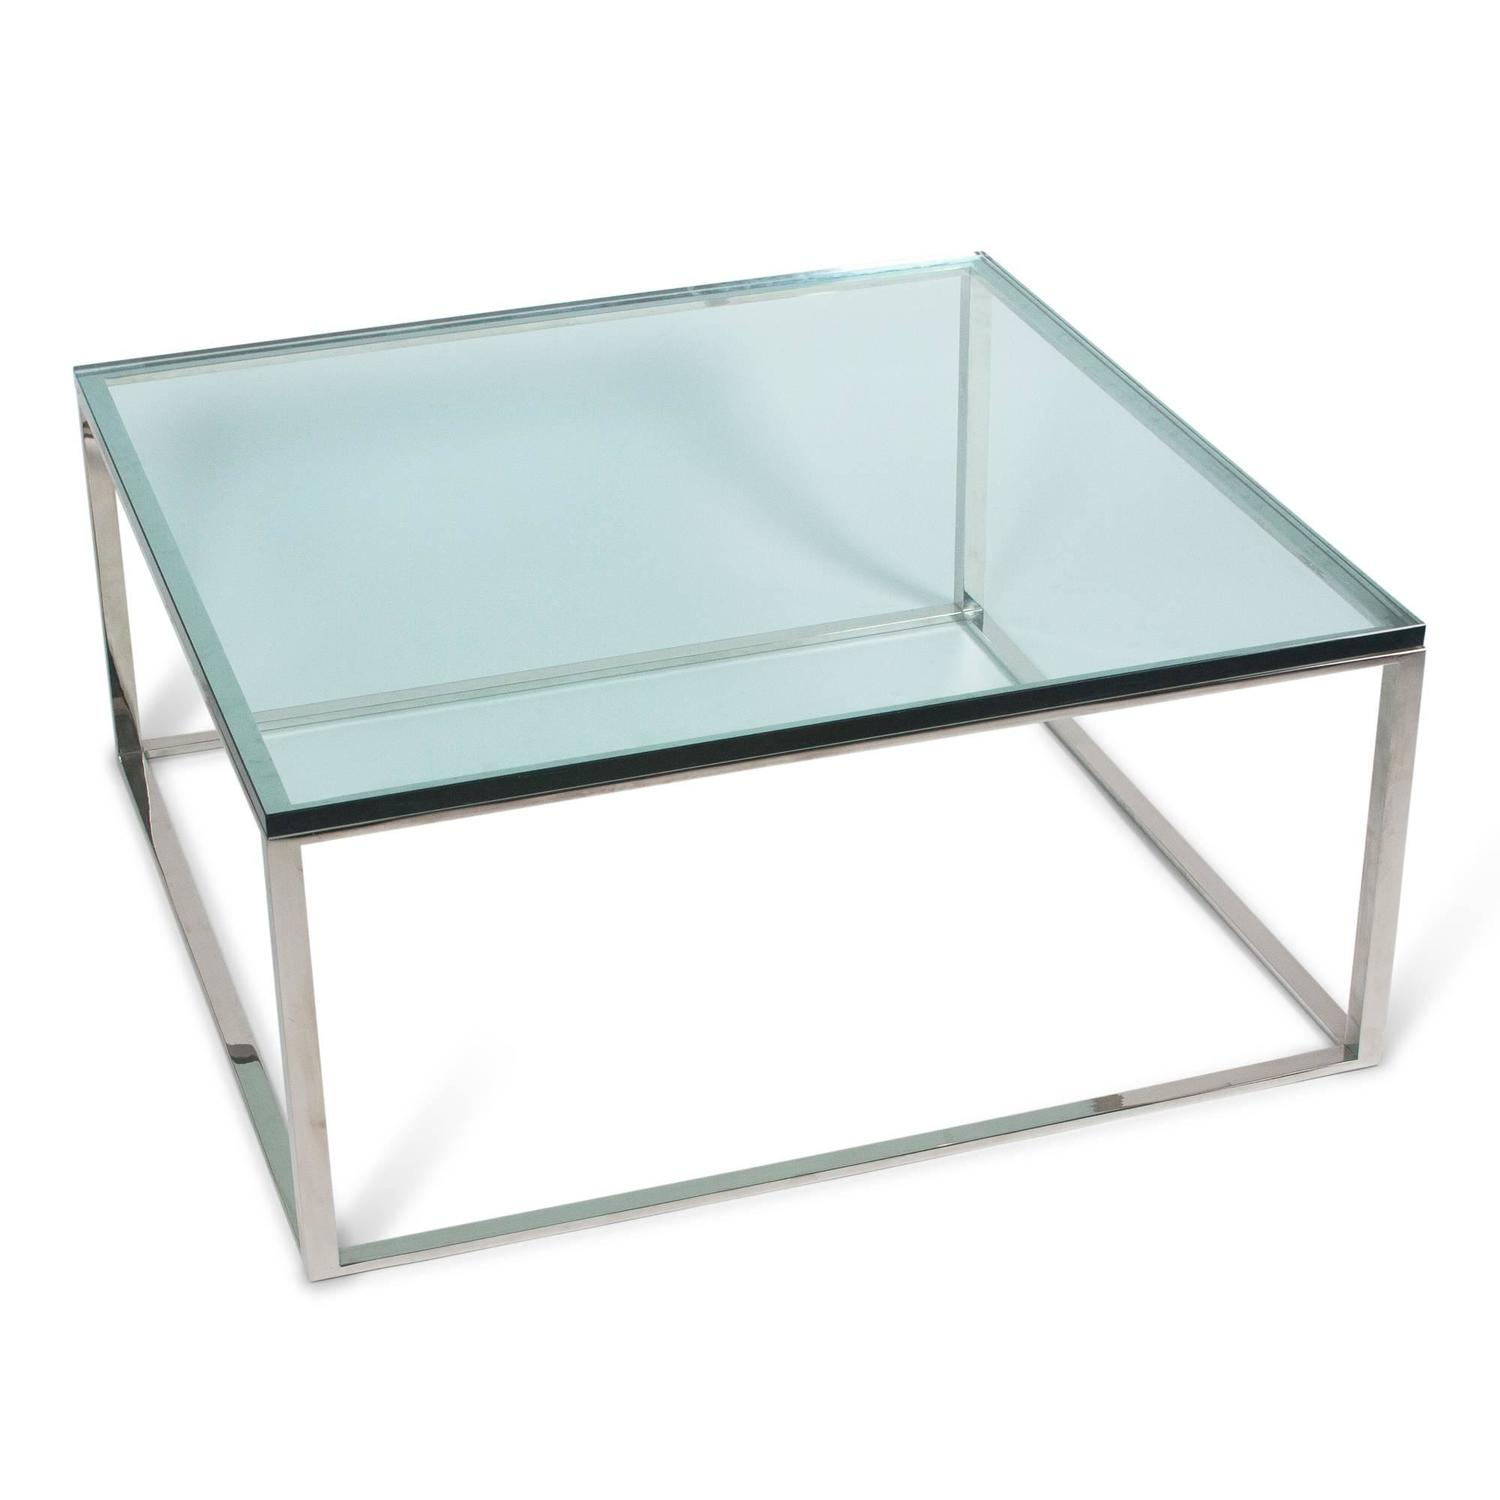 Square Chrome Box Frame Coffee Table, American, 1970s For